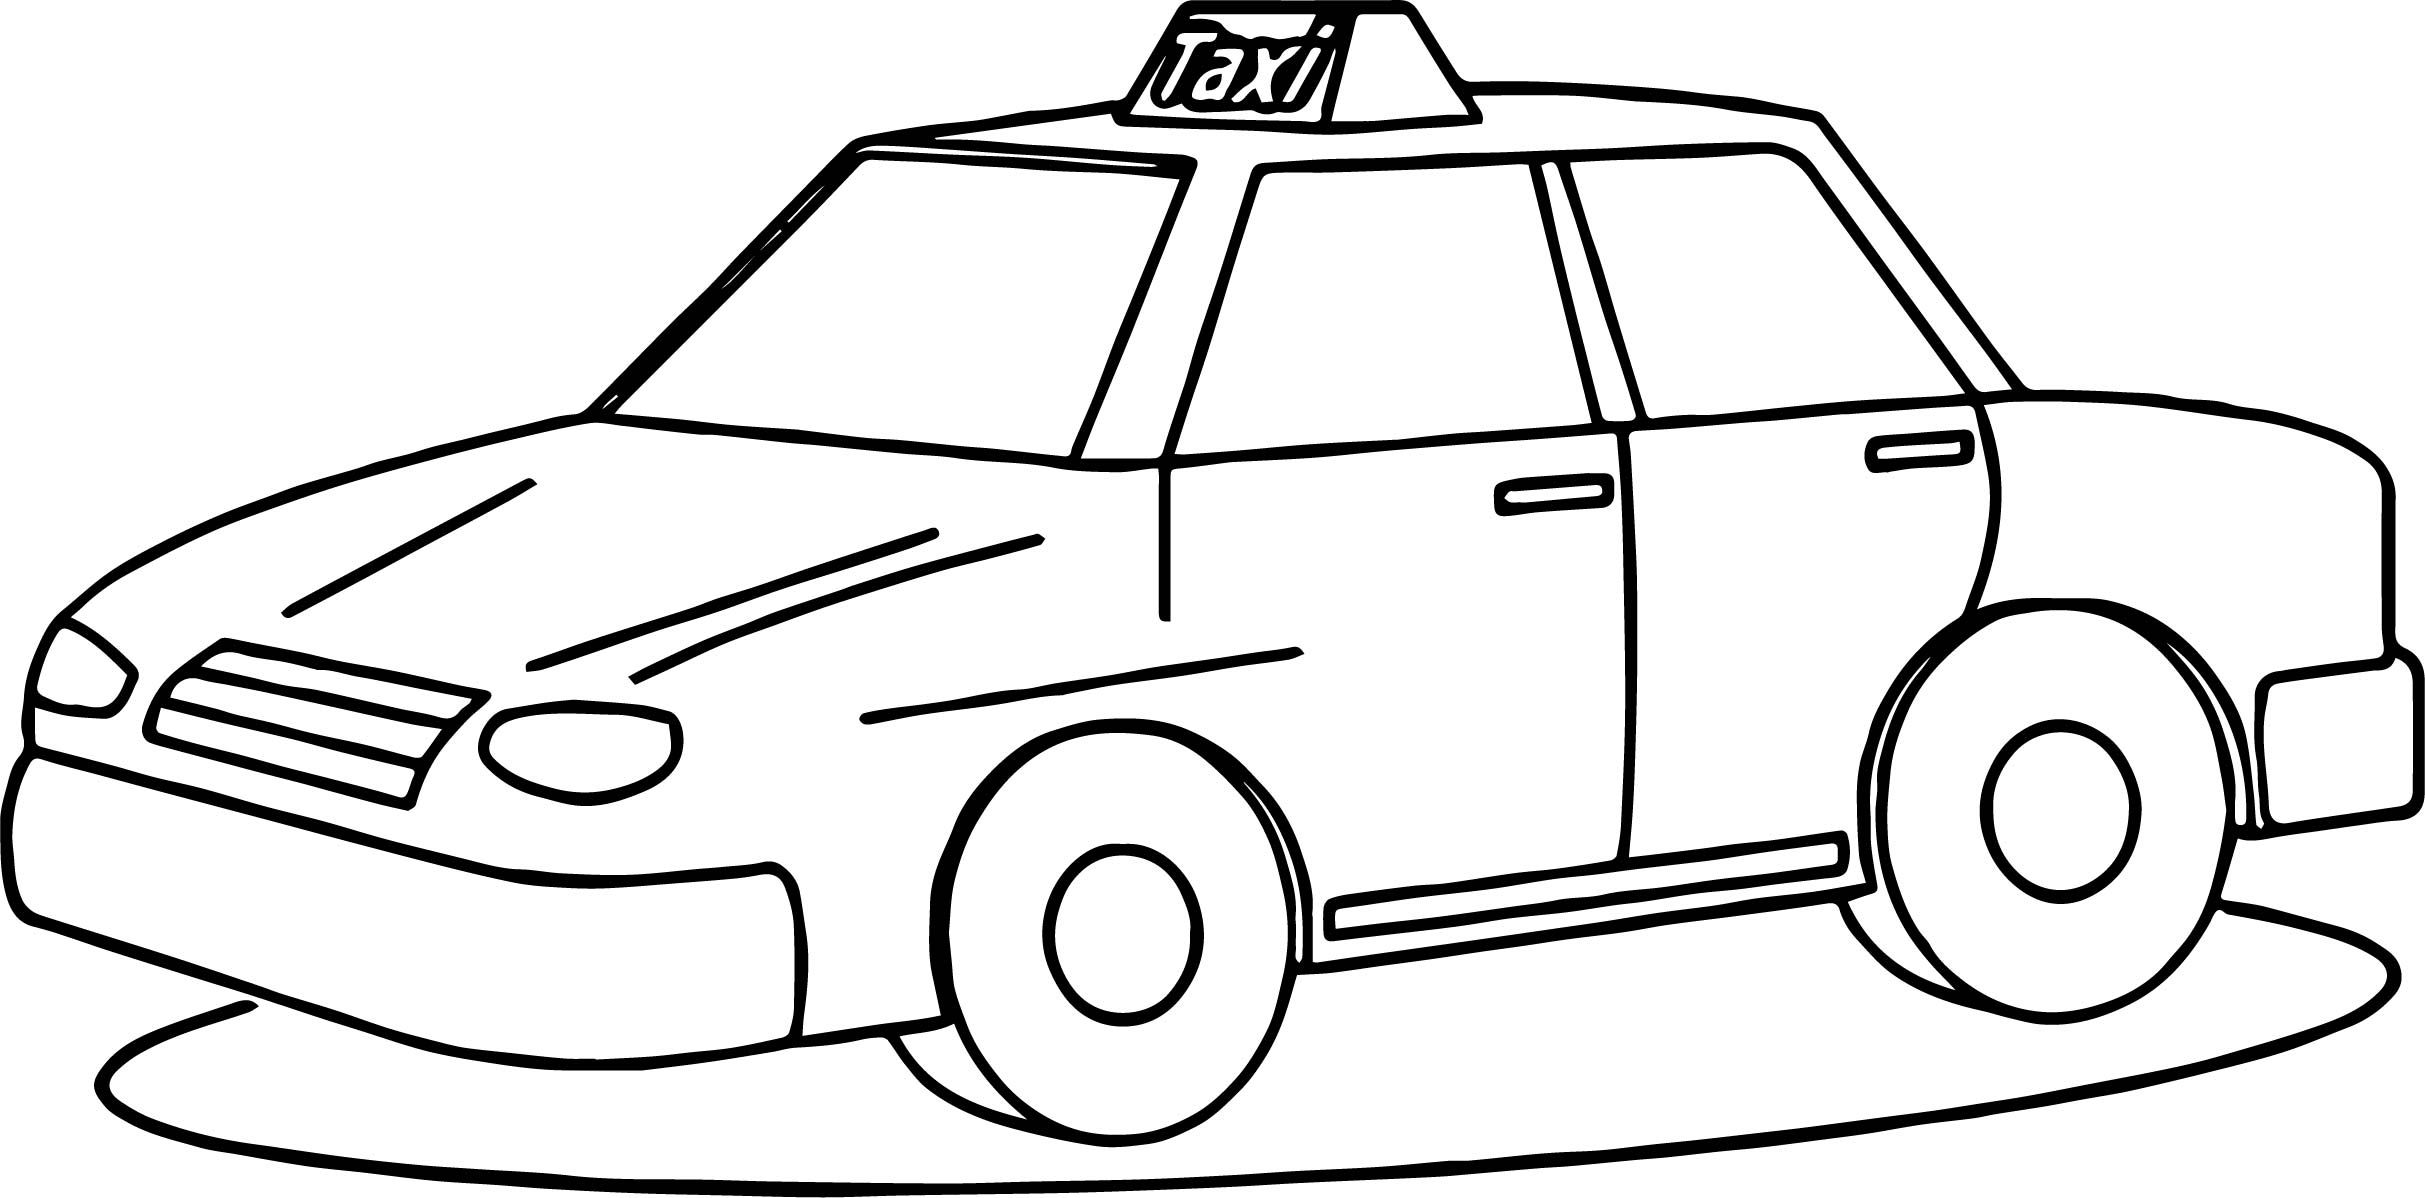 taxi colouring pages taxi coloring pages to download and print for free colouring taxi pages